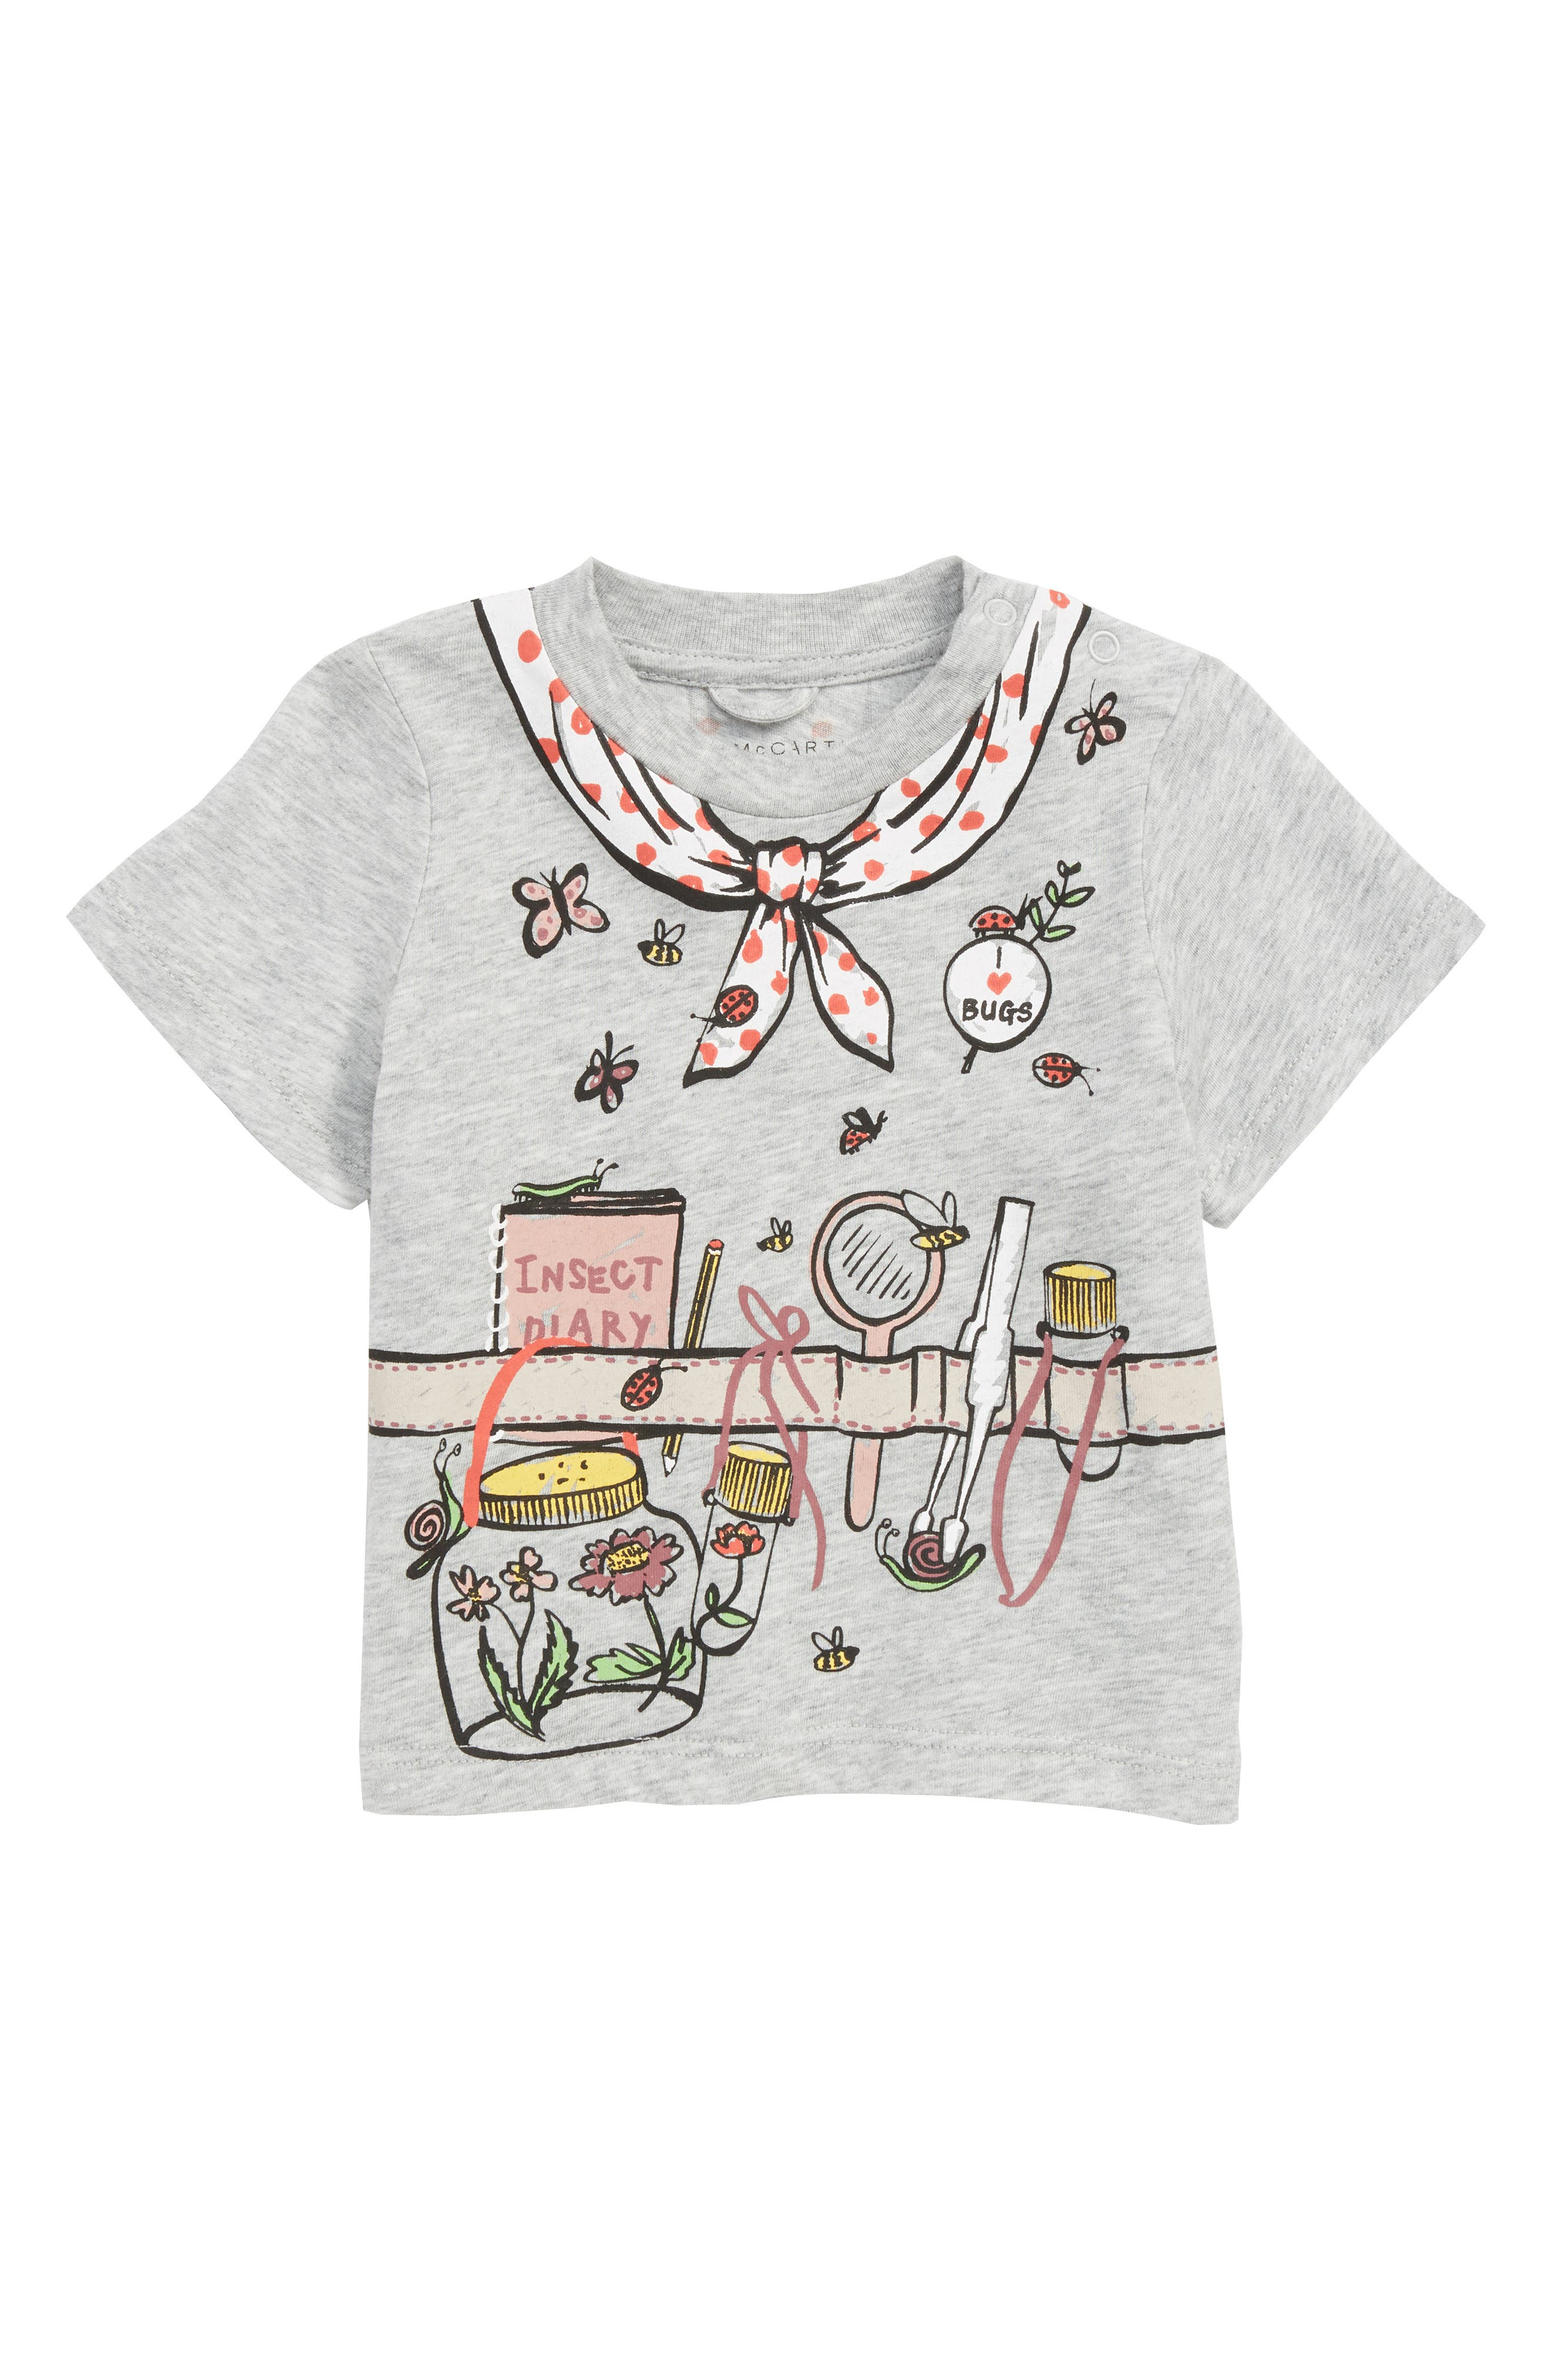 Chuckle Graphic Tee,                         Main,                         color, GREY